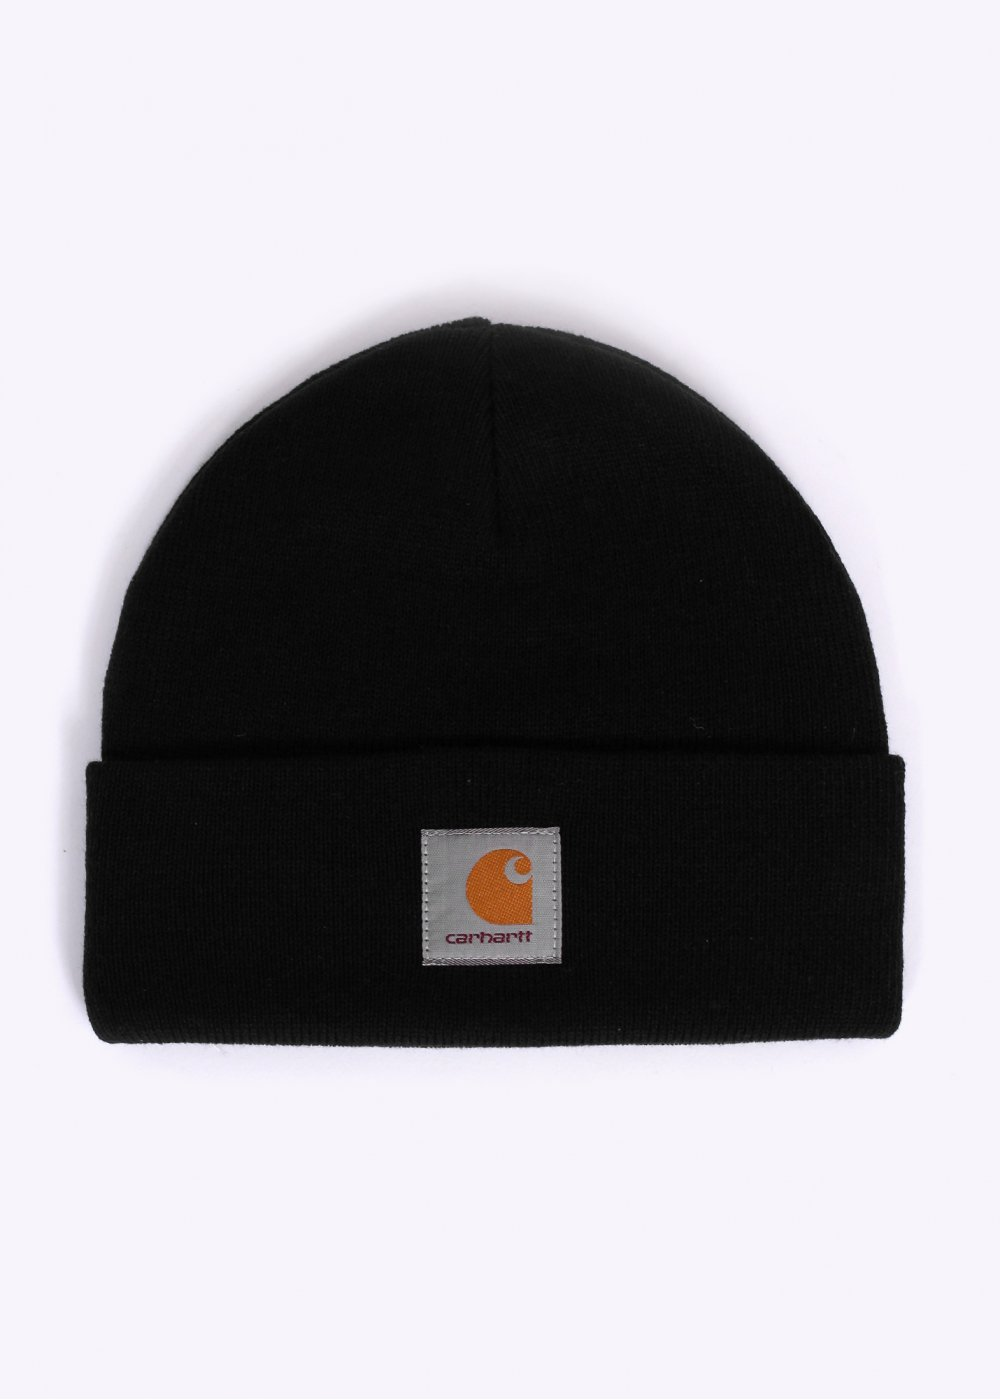 Carhartt Short Watch Beanie Hat - Black 56a09b8c4683